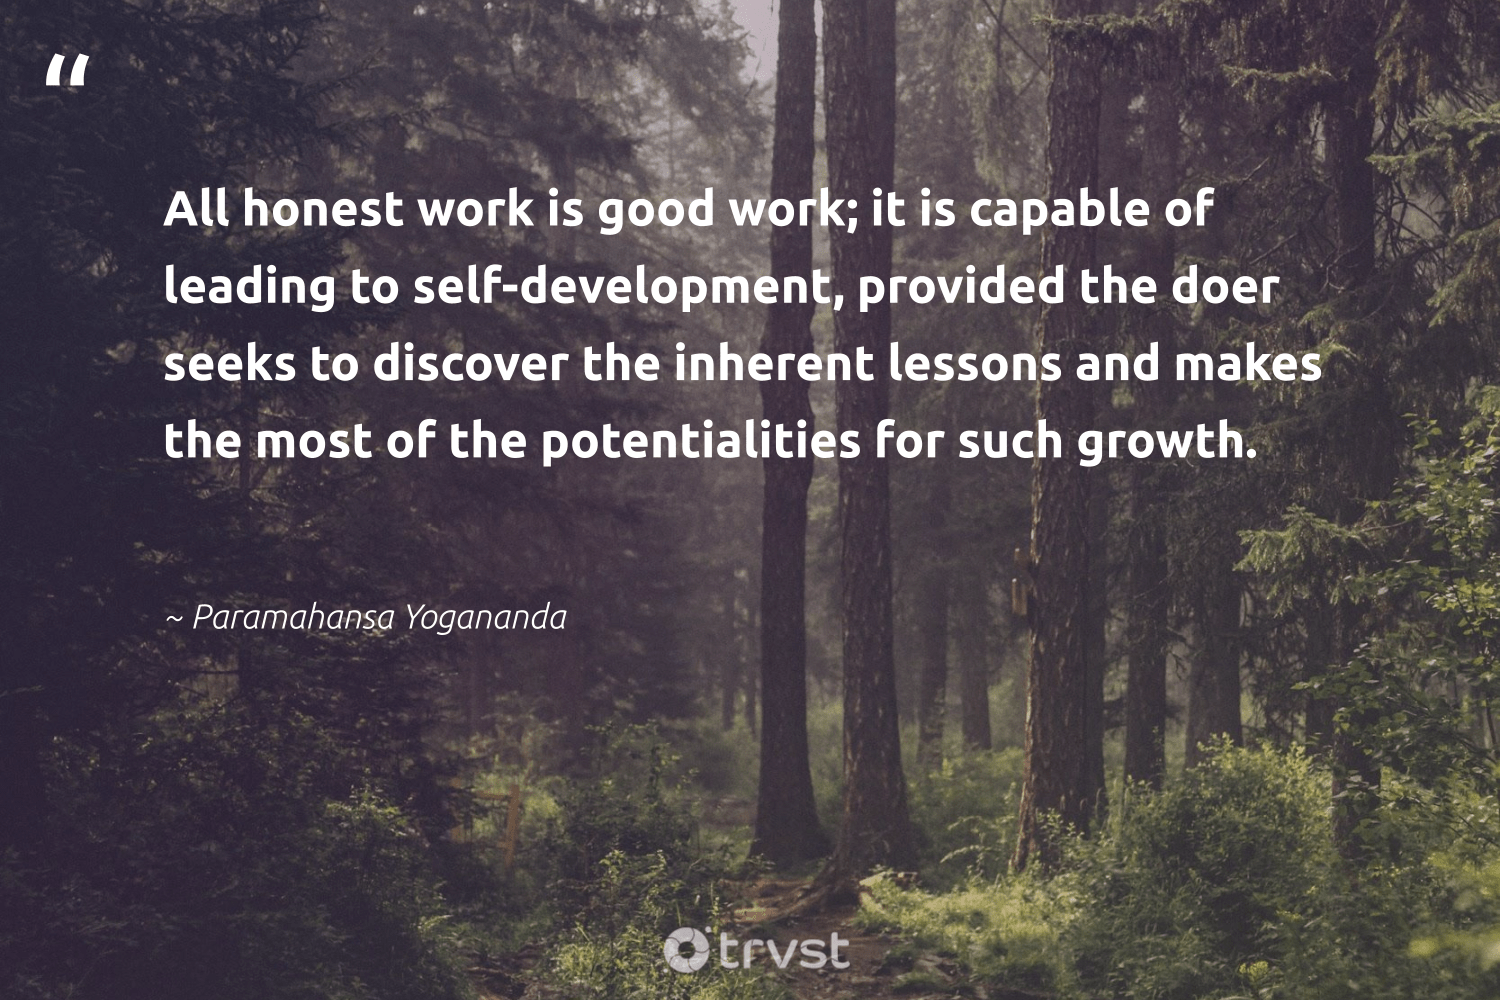 """All honest work is good work; it is capable of leading to self-development, provided the doer seeks to discover the inherent lessons and makes the most of the potentialities for such growth.""  - Paramahansa Yogananda #trvst #quotes #development #softskills #changetheworld #begreat #ecoconscious #futureofwork #dosomething #nevergiveup #beinspired #bethechange"